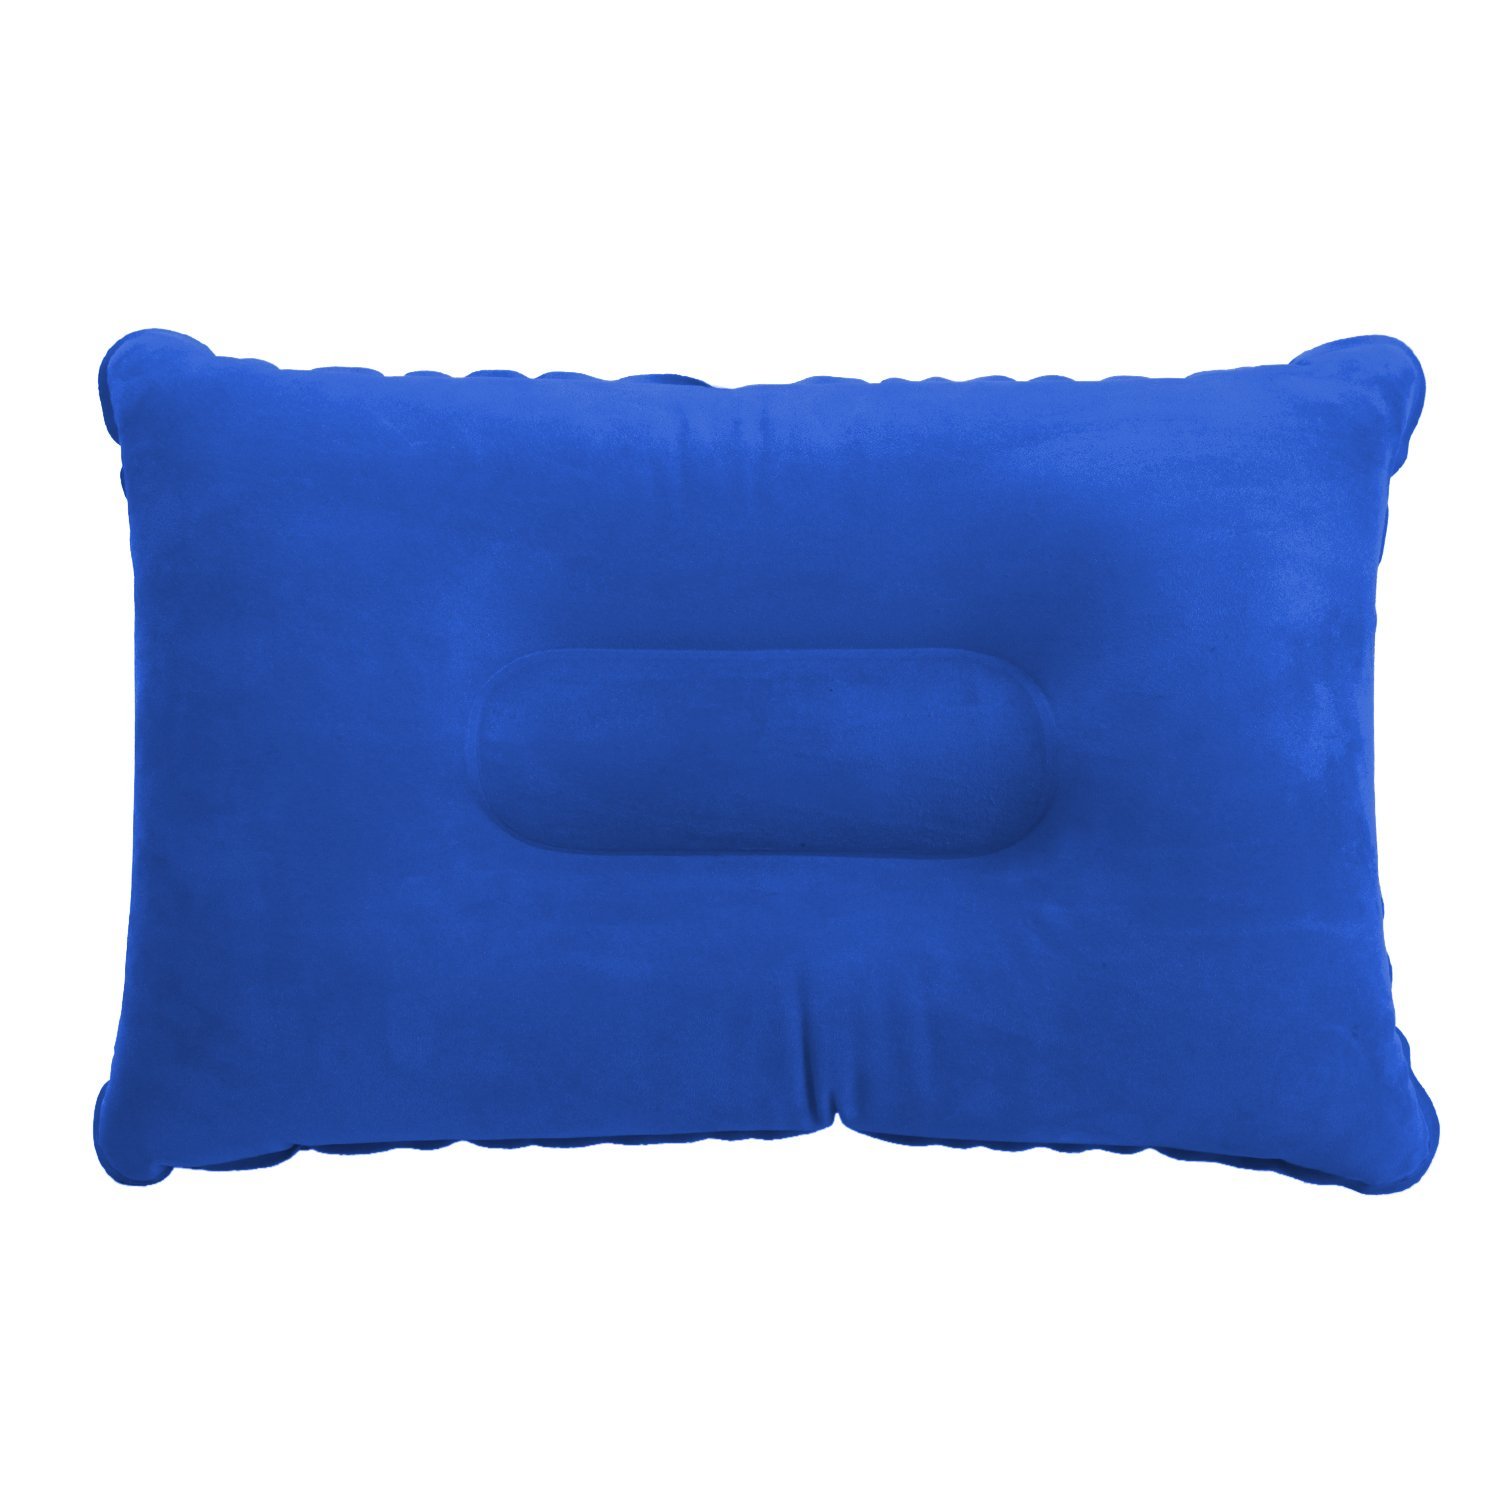 CHIC-CHIC Inflatable Blow-up Camping Pillow Portable Lightweight Travel Pillow for Traveling Beach Hiking Picnic